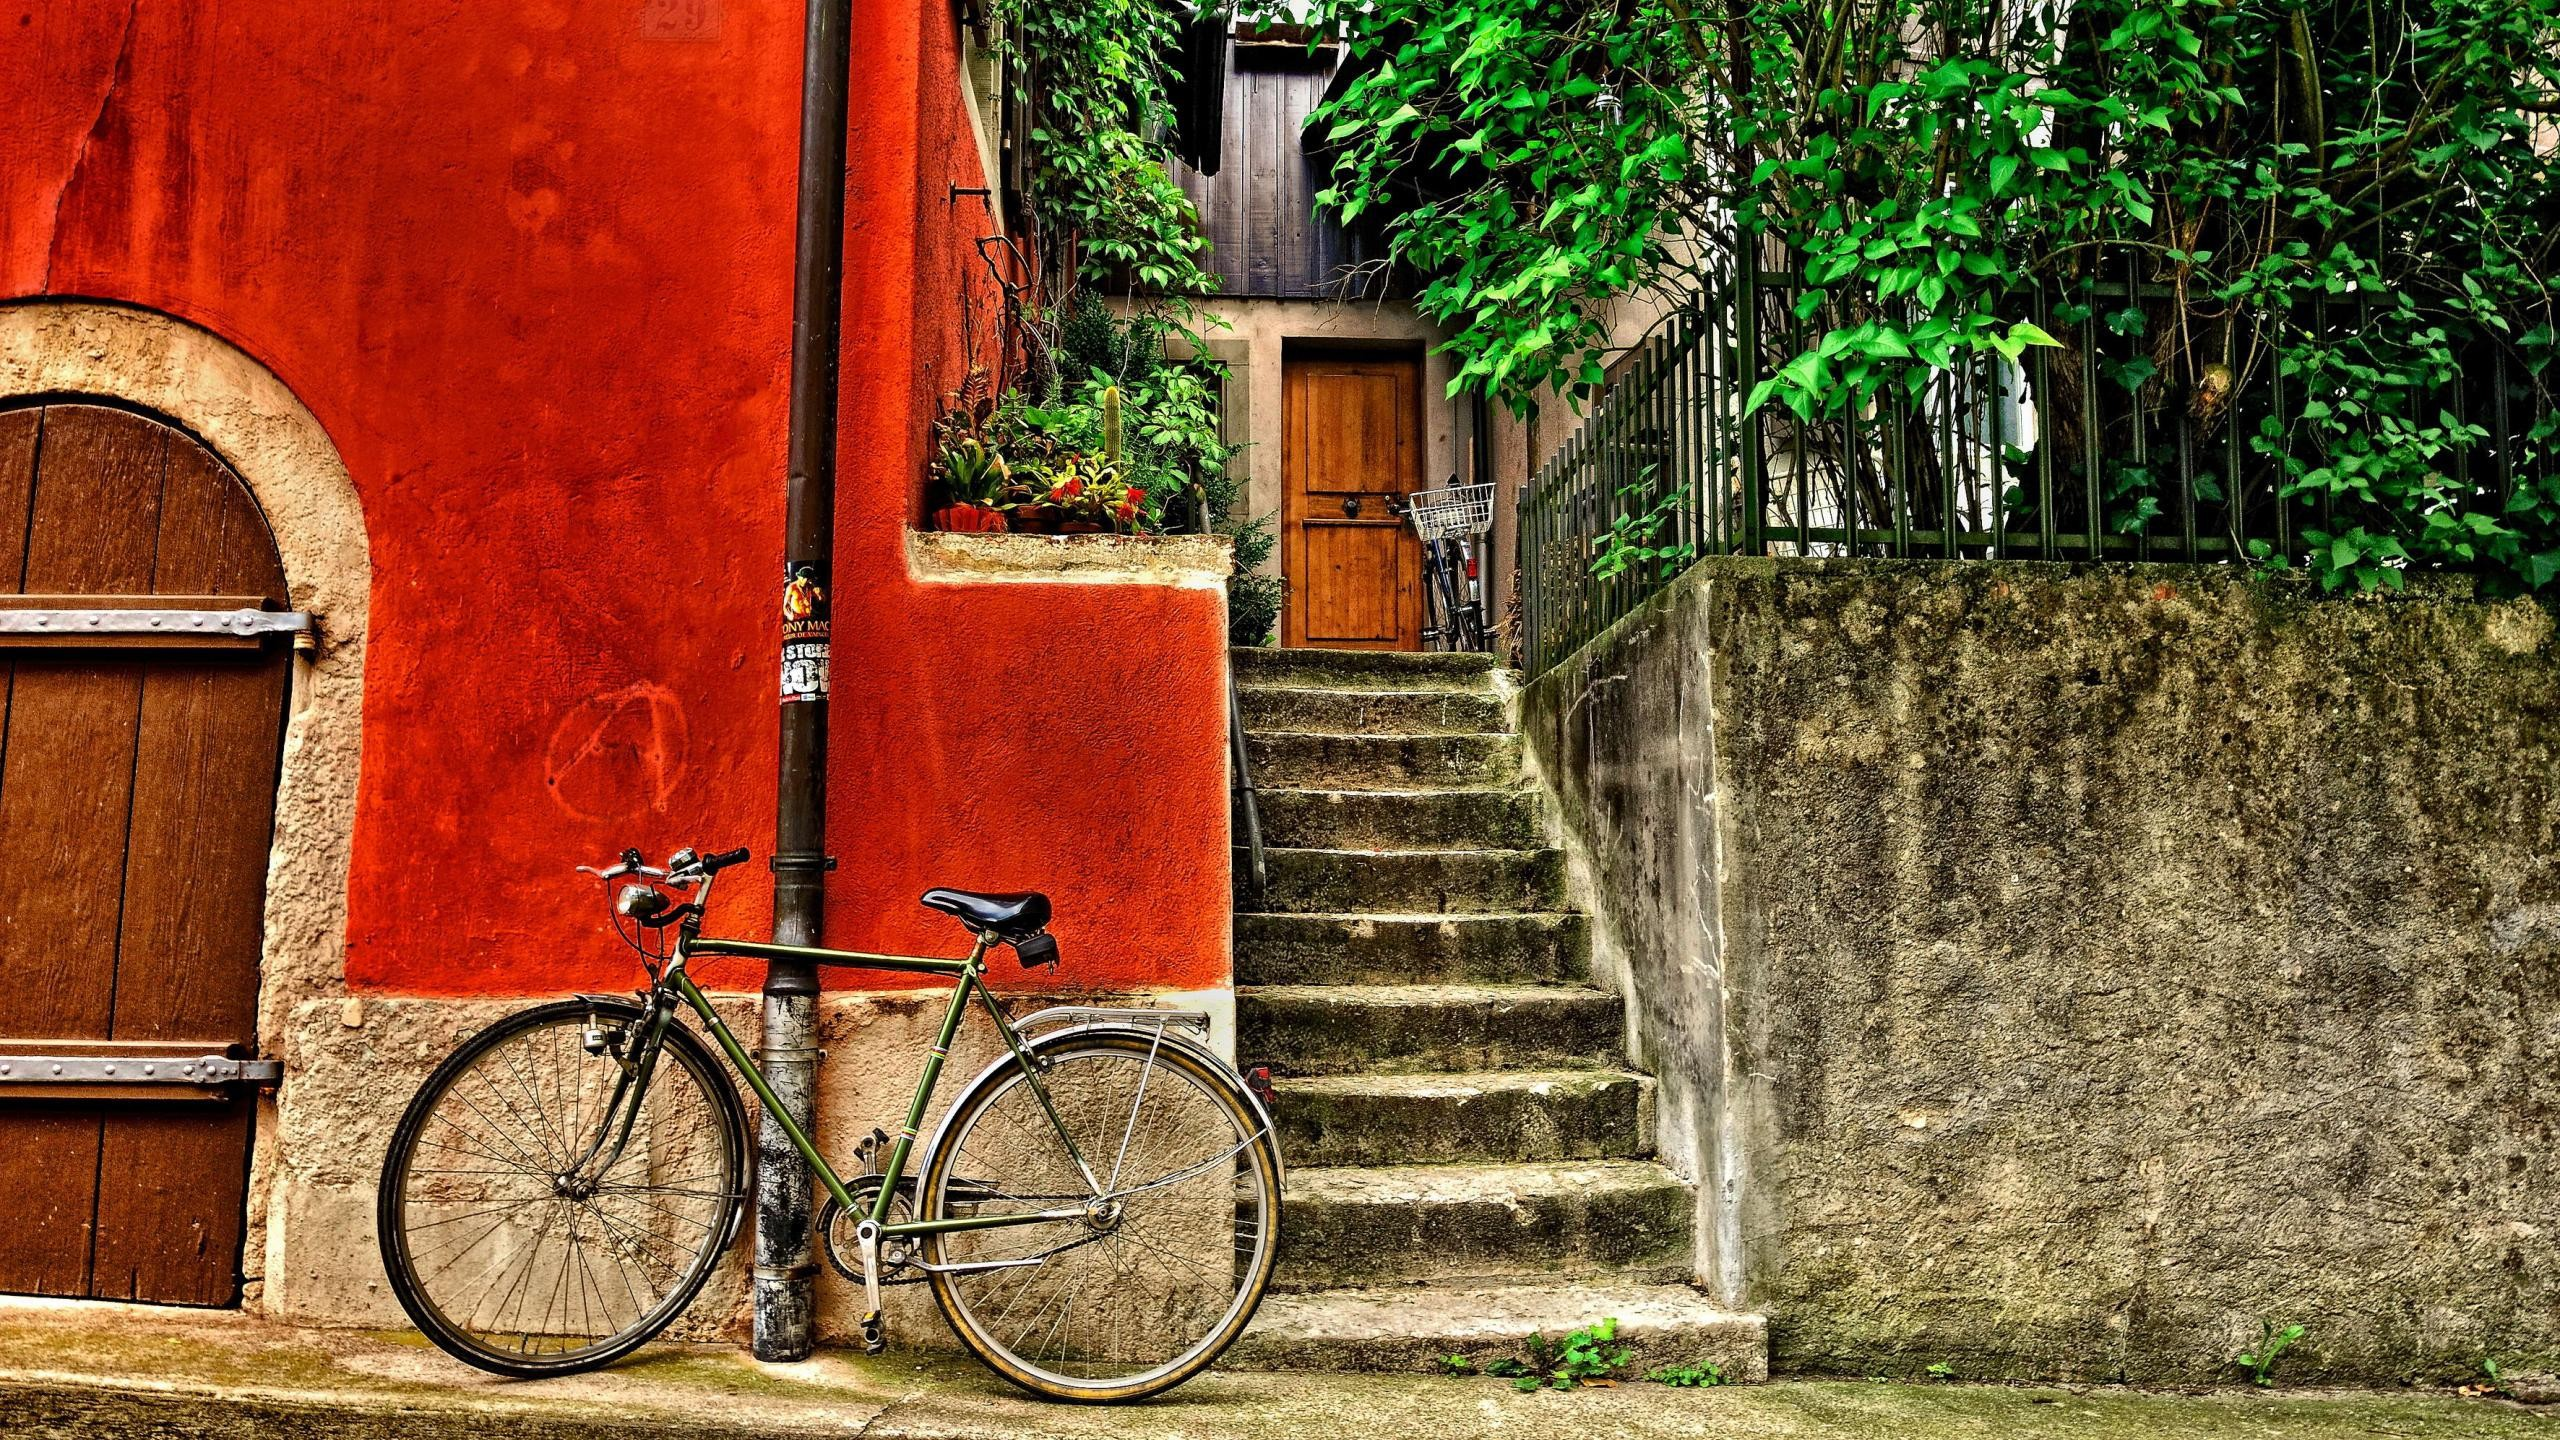 Bicycle High Quality Wallpapers